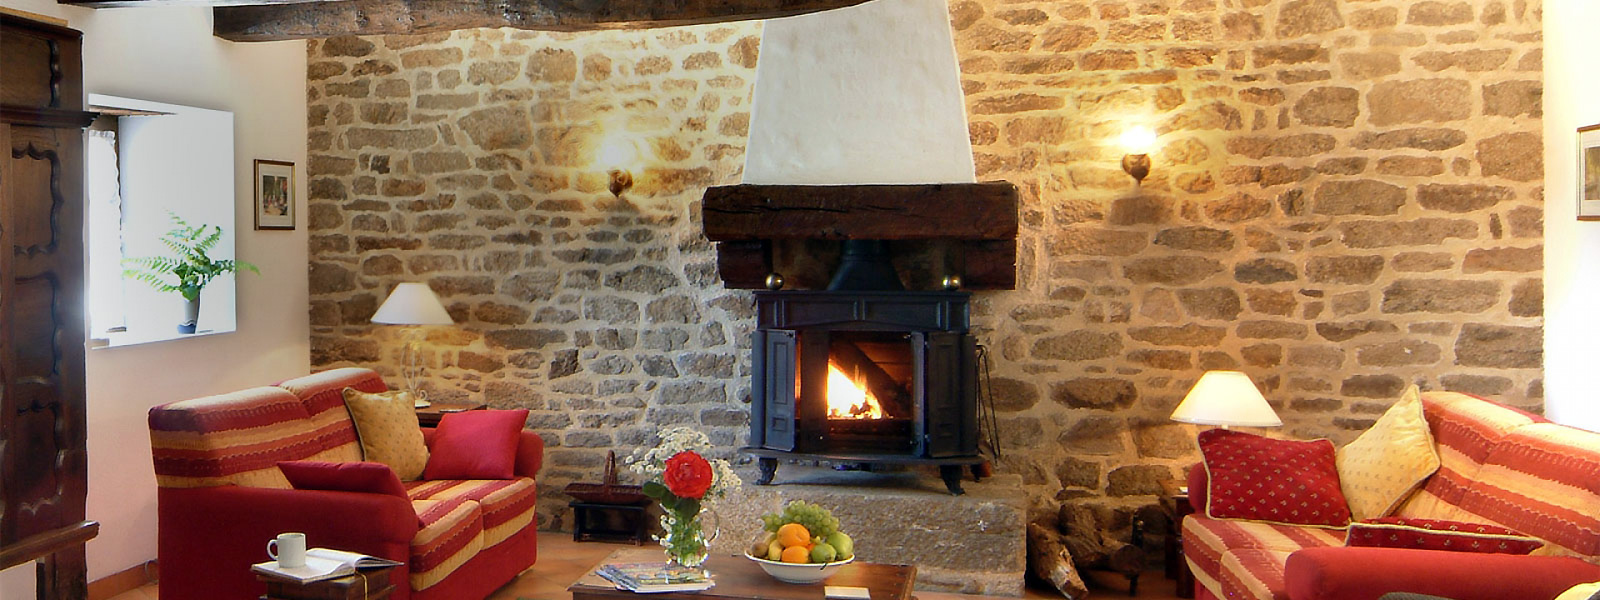 https://www.selectcottages.com/sites/default/files/revslider/image/brittany-fire-lounge.jpg